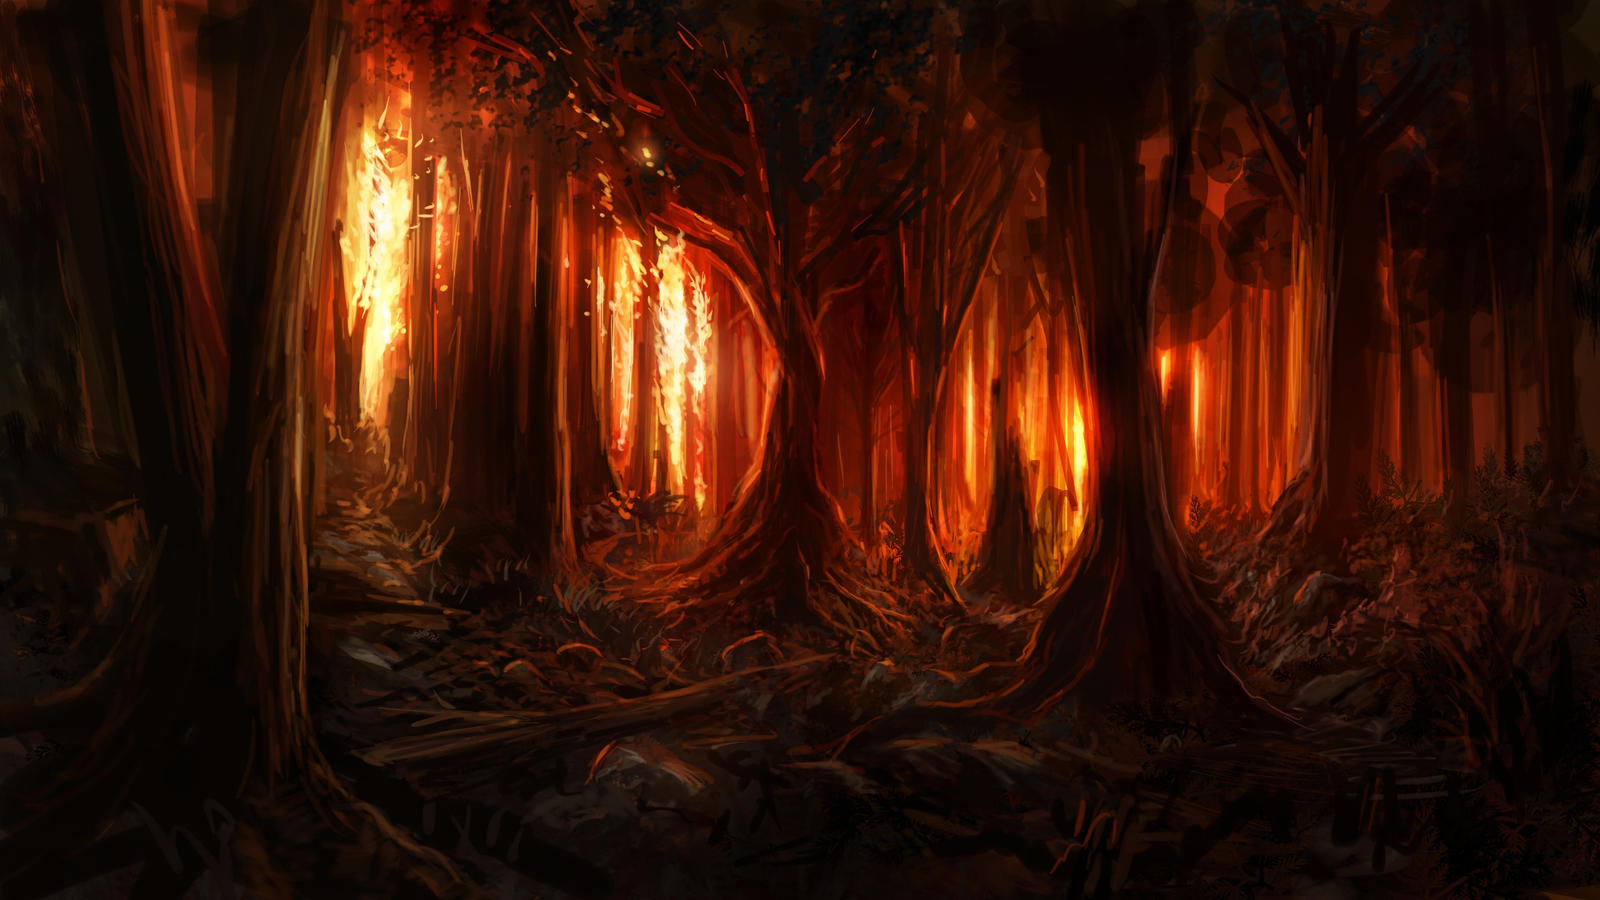 Burning Woods by Alexvanderlinde